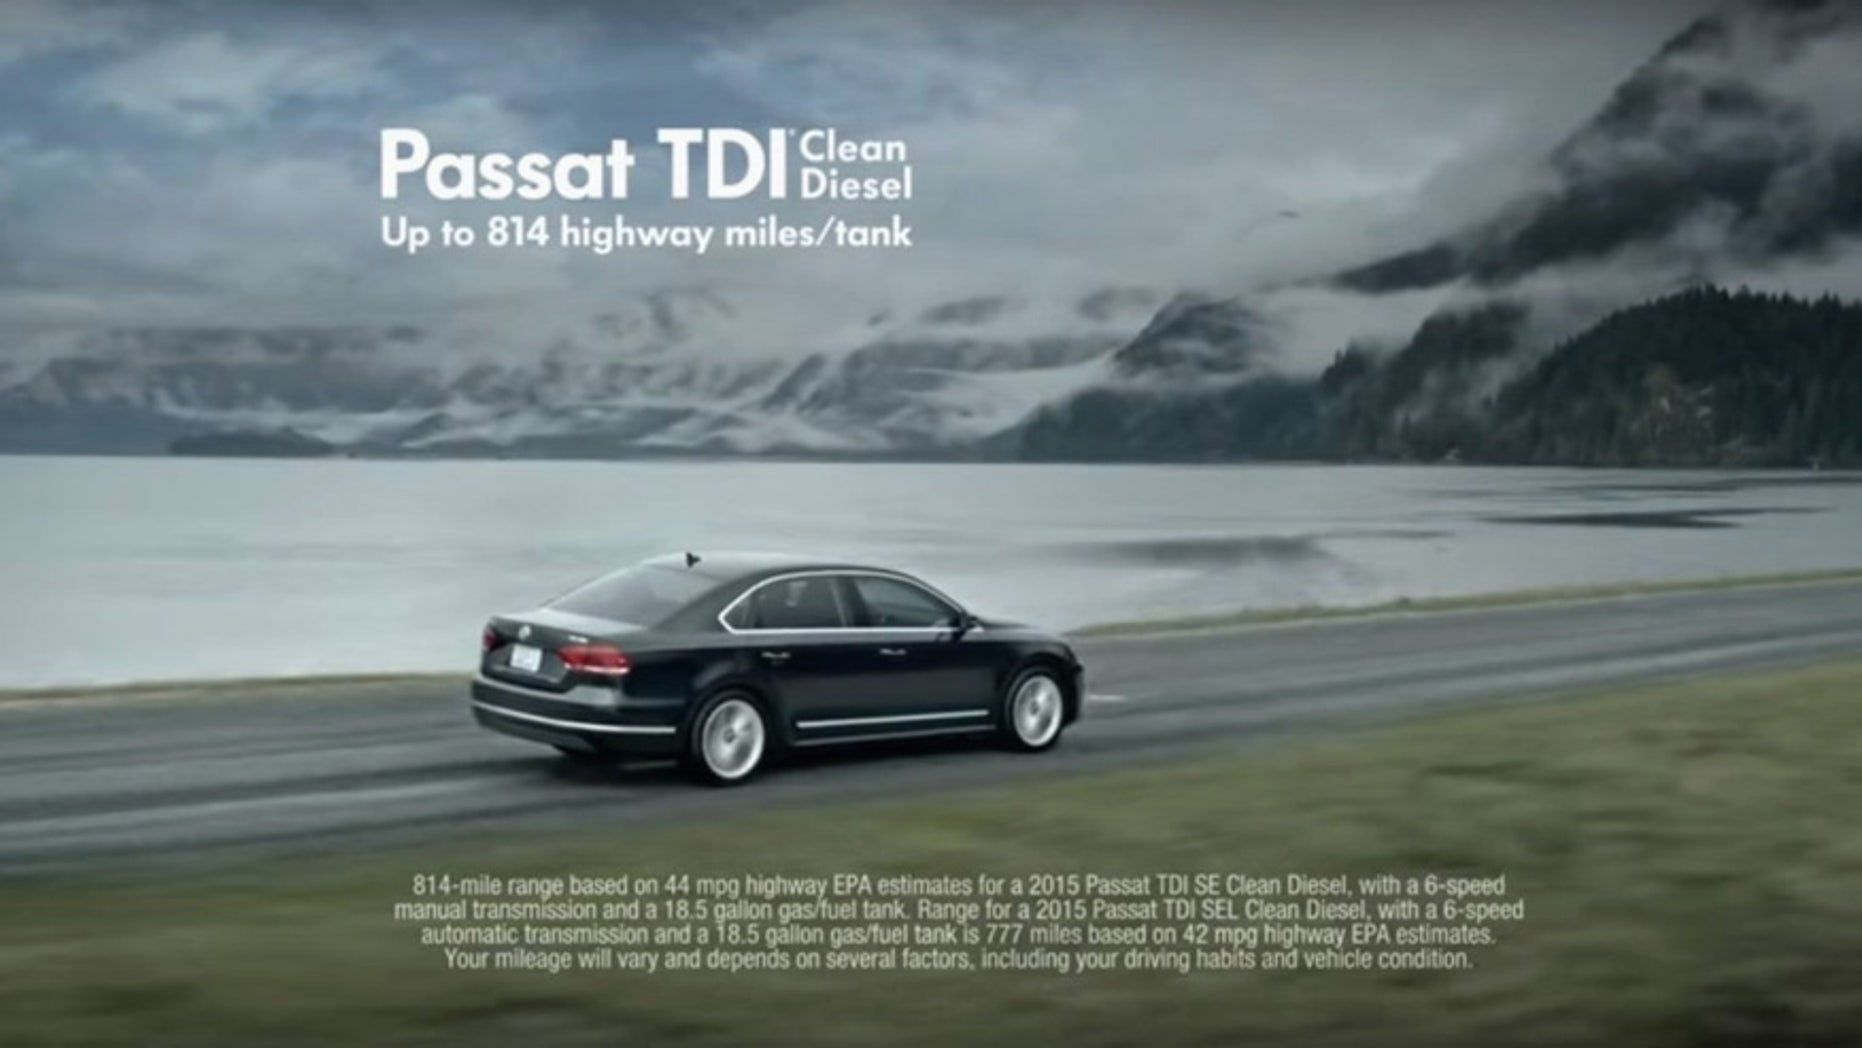 This is a framegrab from a Volkswagen commercial for a vehicle with their TDI Clean Diesel engine. (Volkswagen/Youtube via AP)